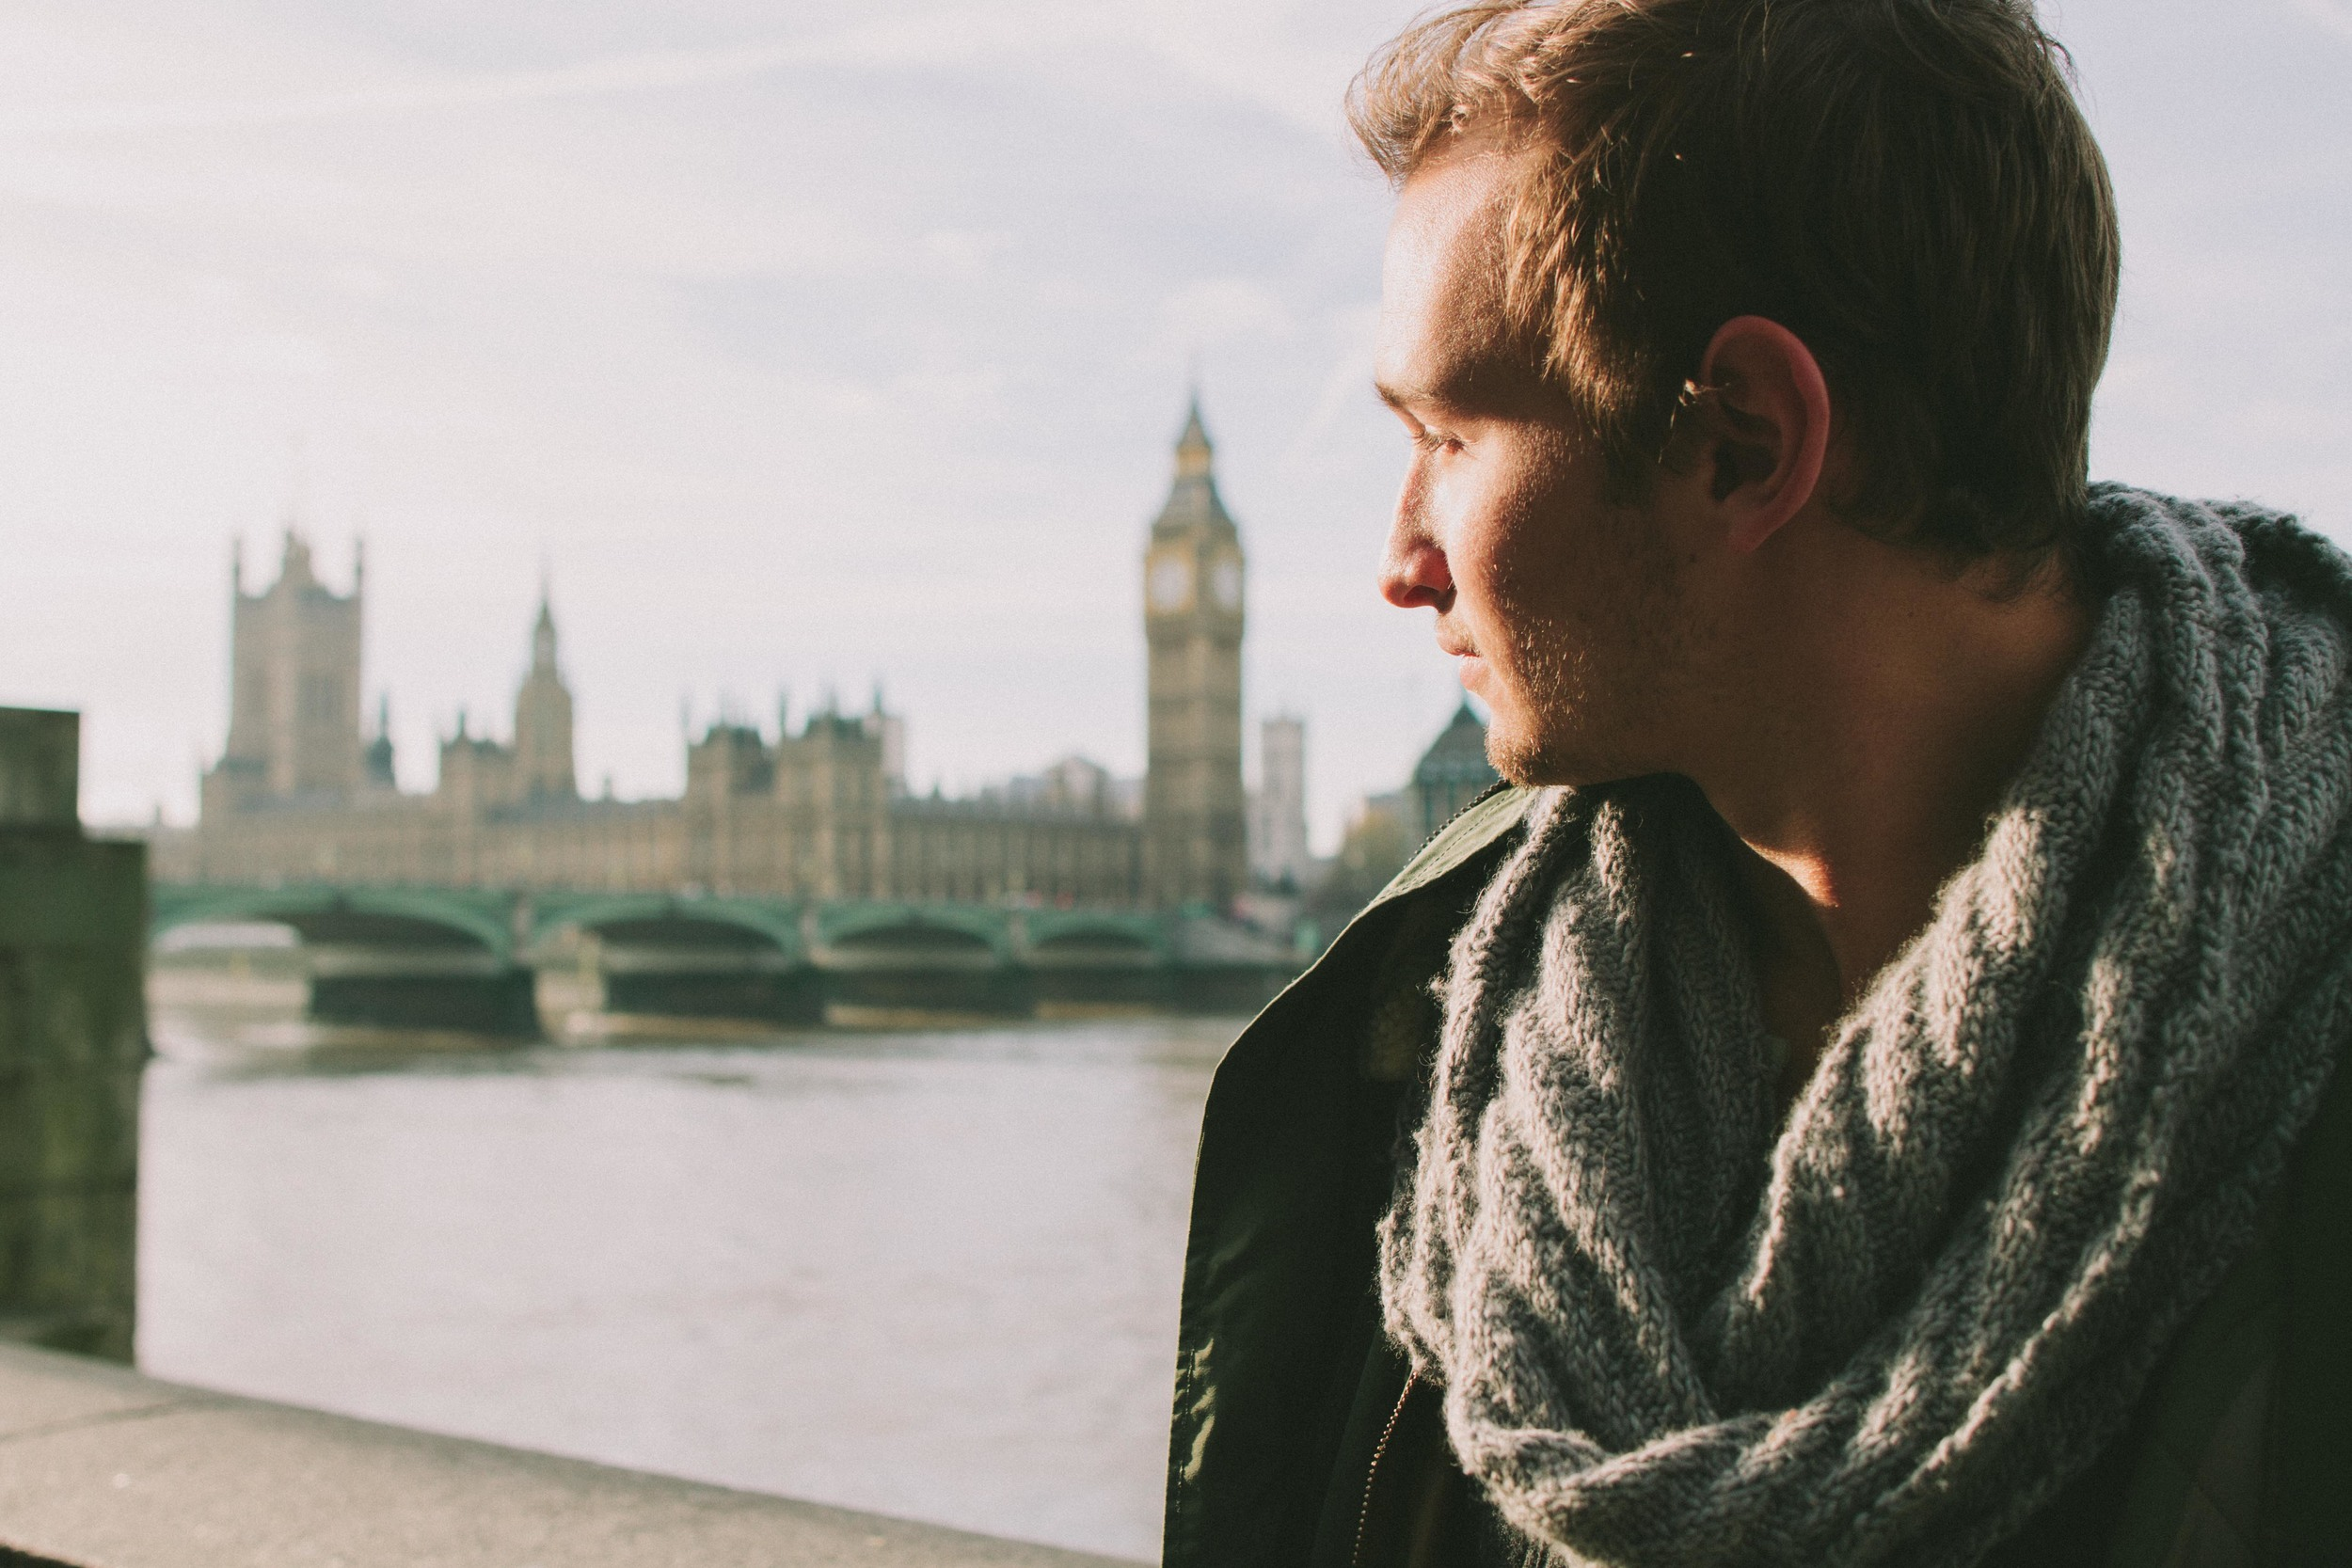 LONDON PART I // LET'S GO SEE THE SIGHTS // THE ETERNAL CHILD // VALERIE NOELL © 2013